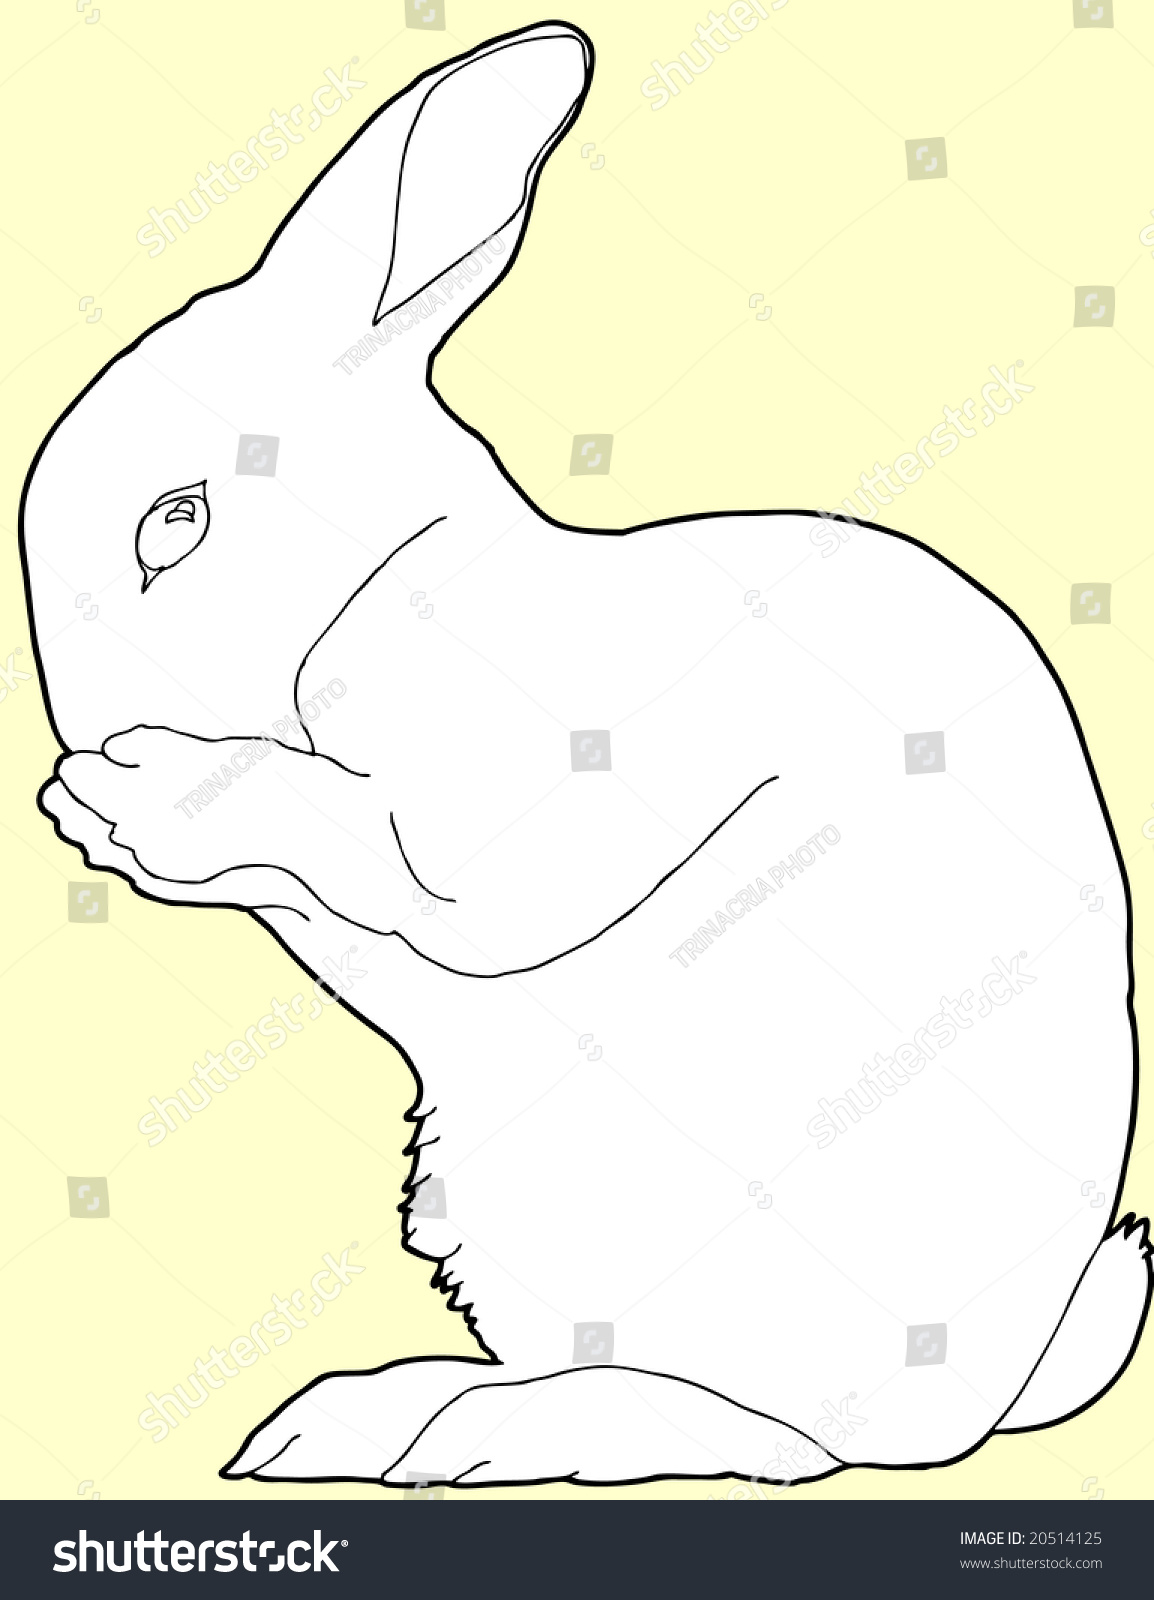 Line Drawing Easter : Contour line drawing of easter bunny stock vector